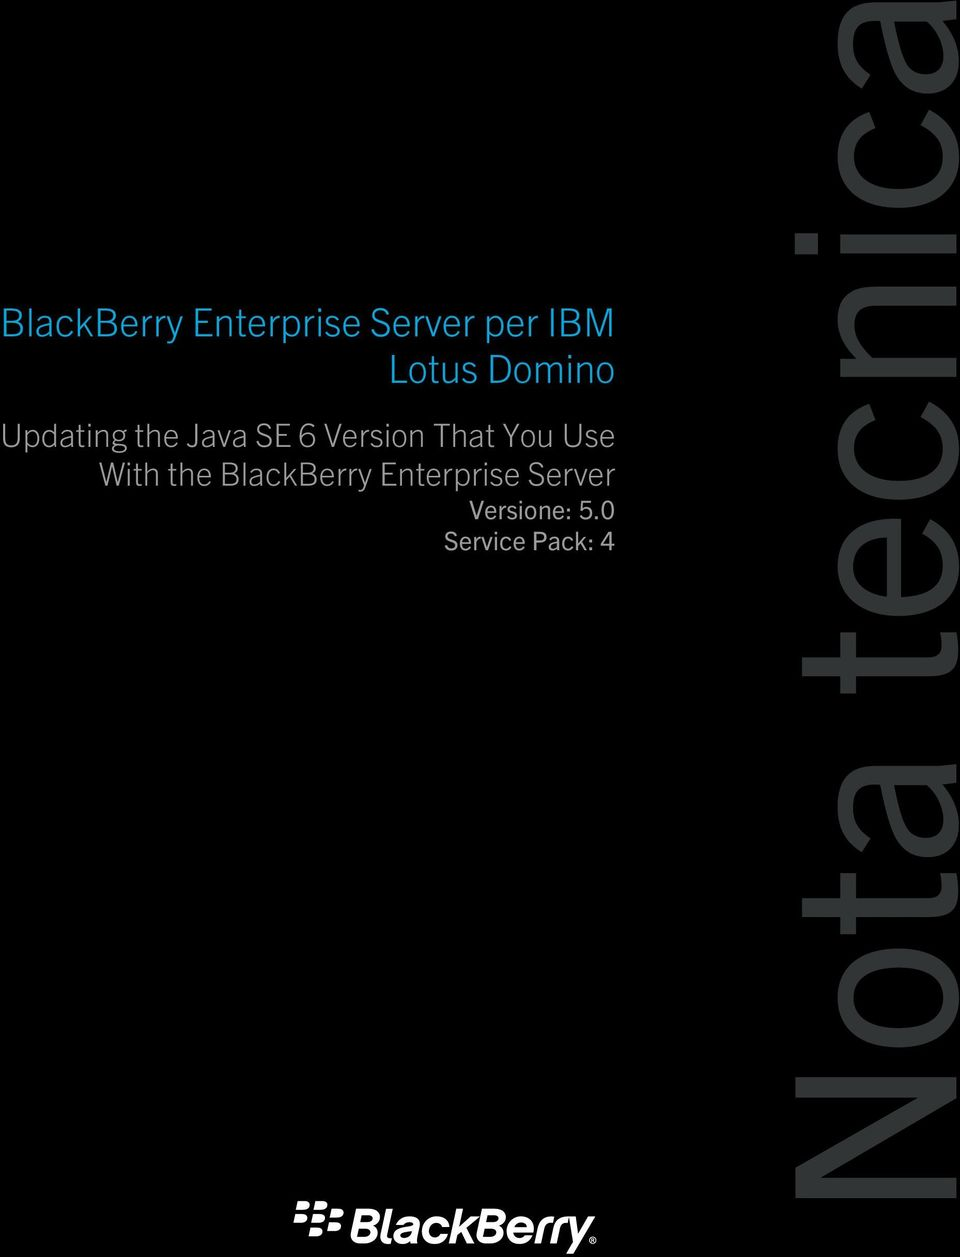 You Use With the BlackBerry Enterprise